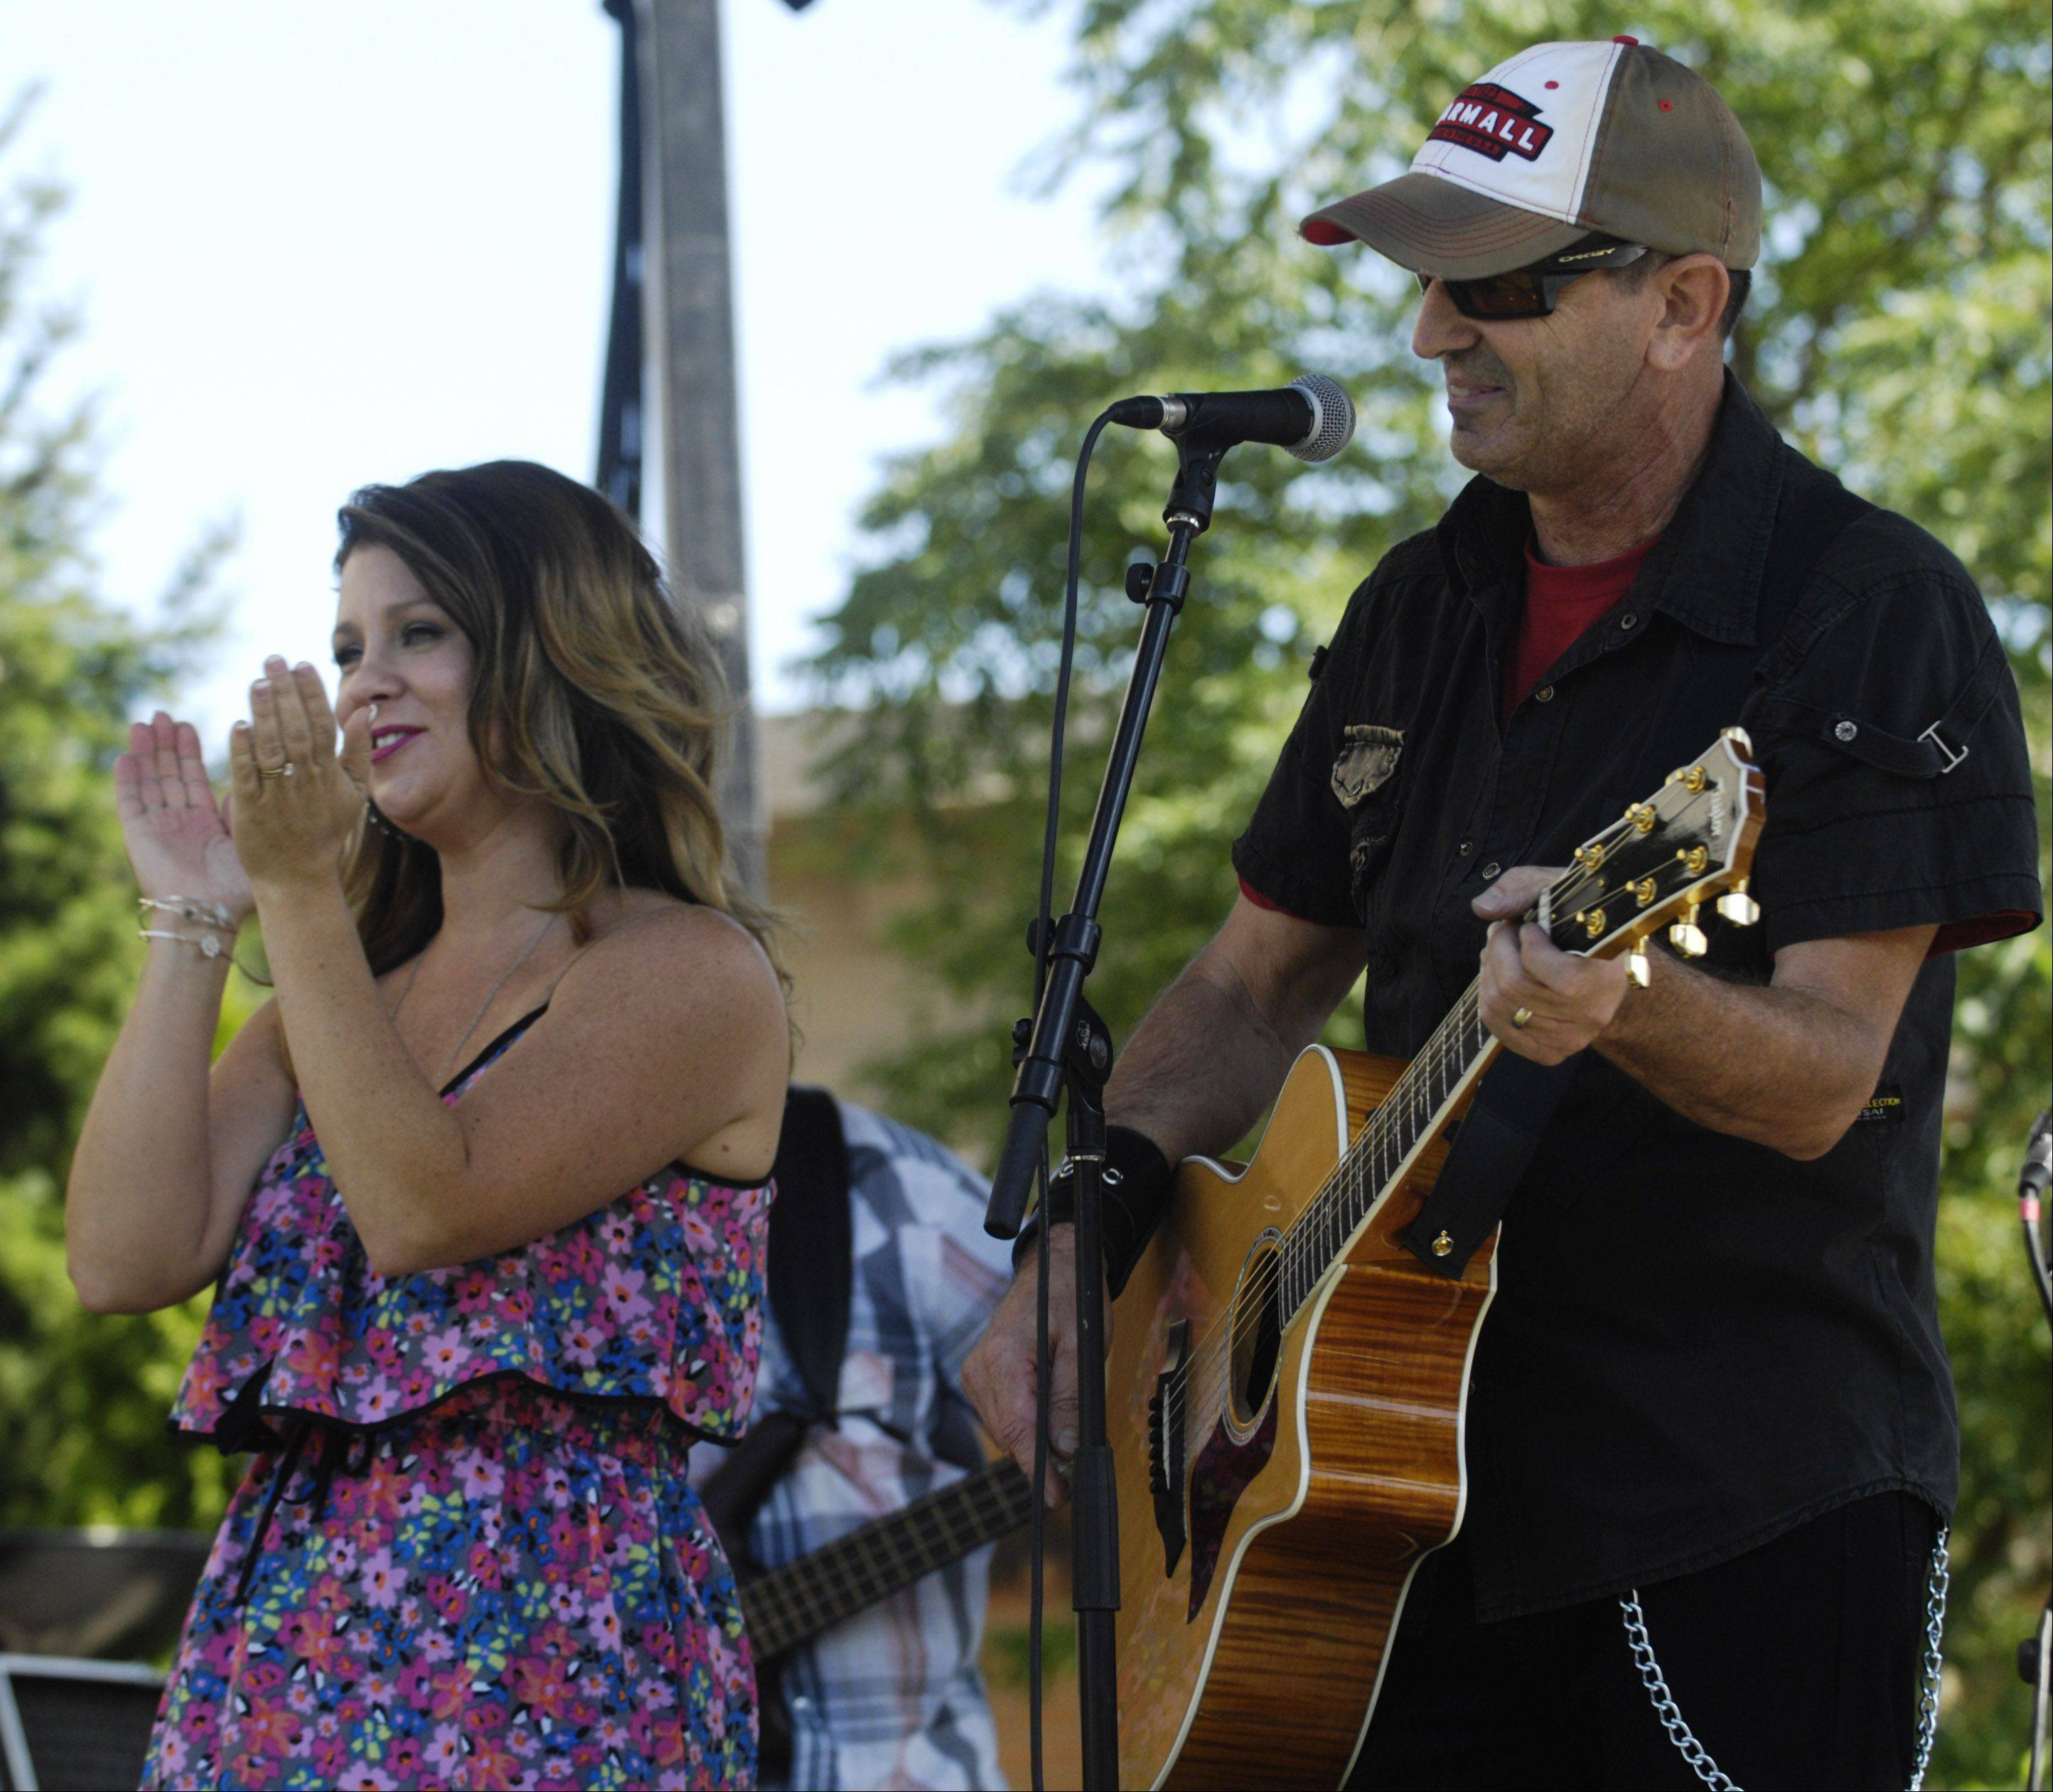 """Faith and Whisky"" with singer Camille Eiseman and guitarist/singer Terry Tank performs during the Suburban Chicago's Got Talent finals Saturday at the Mane Event in downtown Arlington Heights. Both are from Crystal Lake."